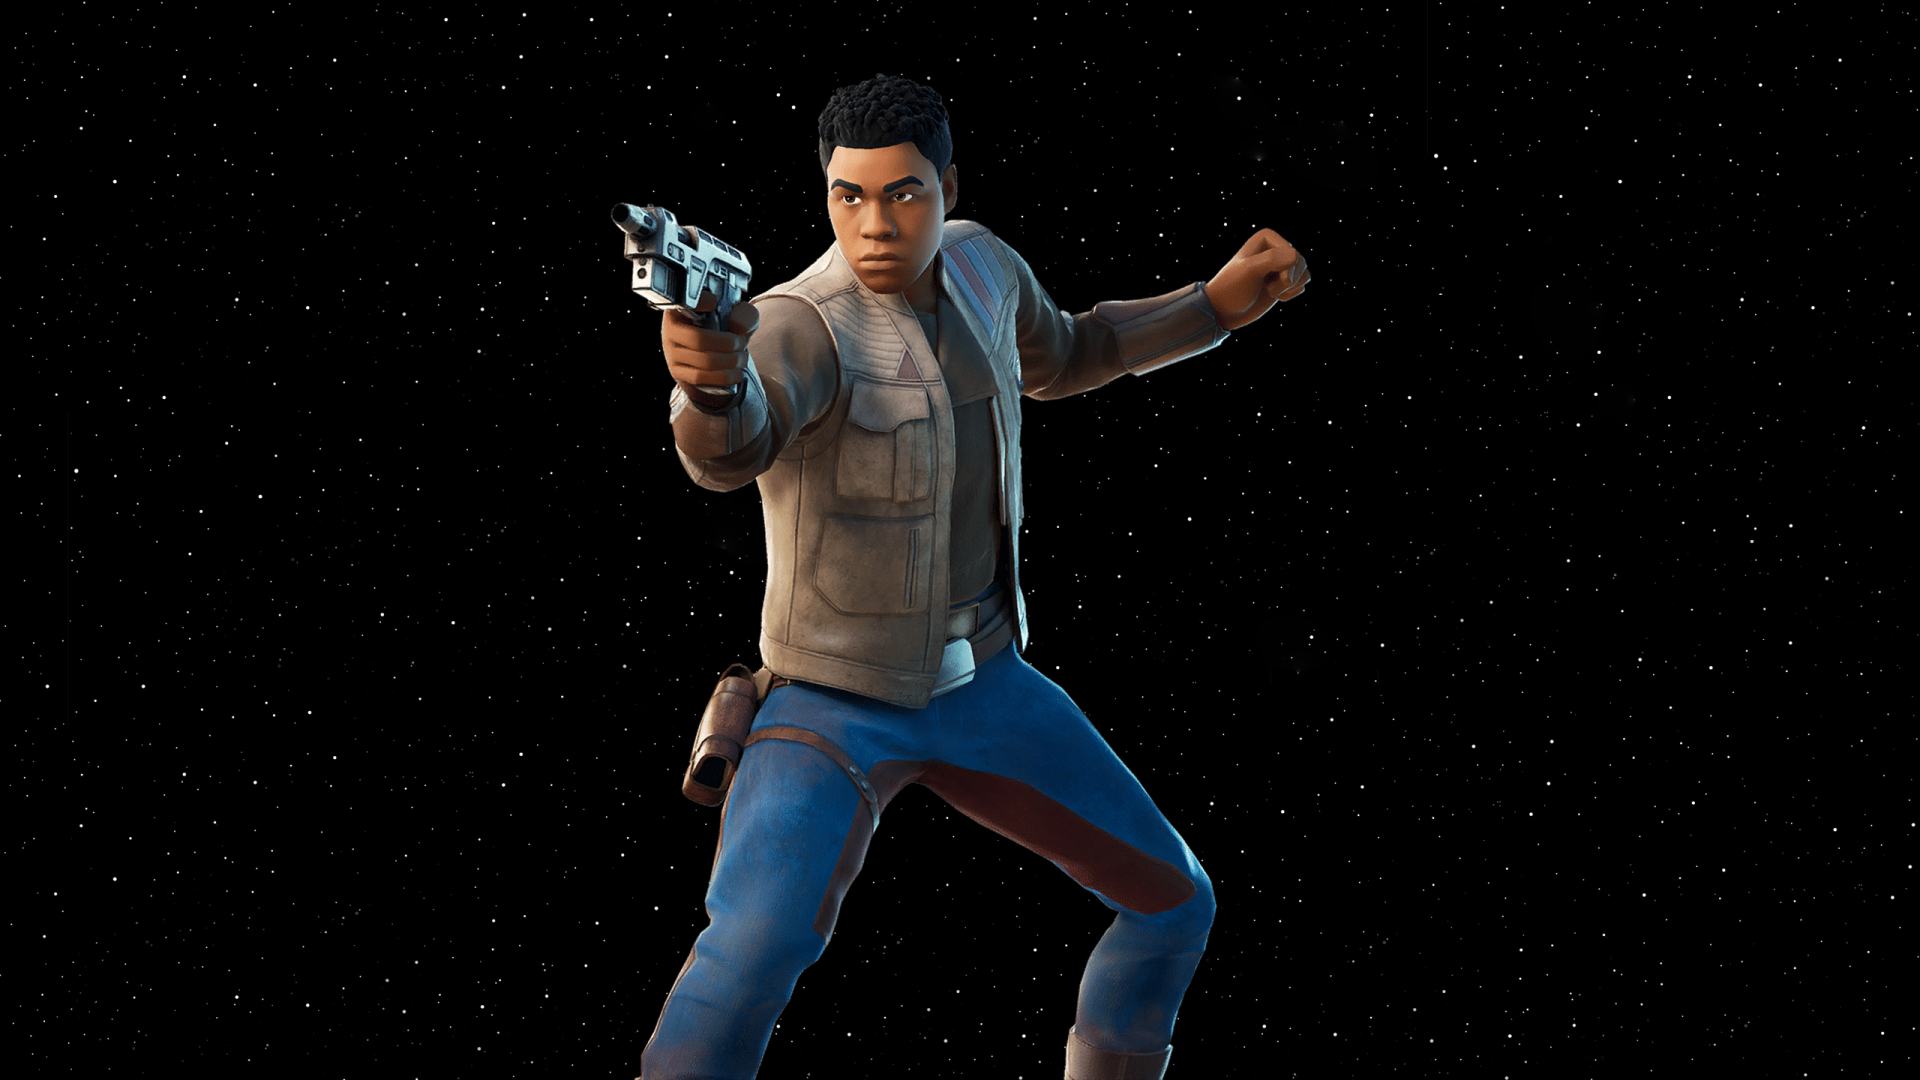 1920x1080 Fortnite Finn 1080p Laptop Full Hd Wallpaper Hd Games 4k Wallpapers Images Photos And Background